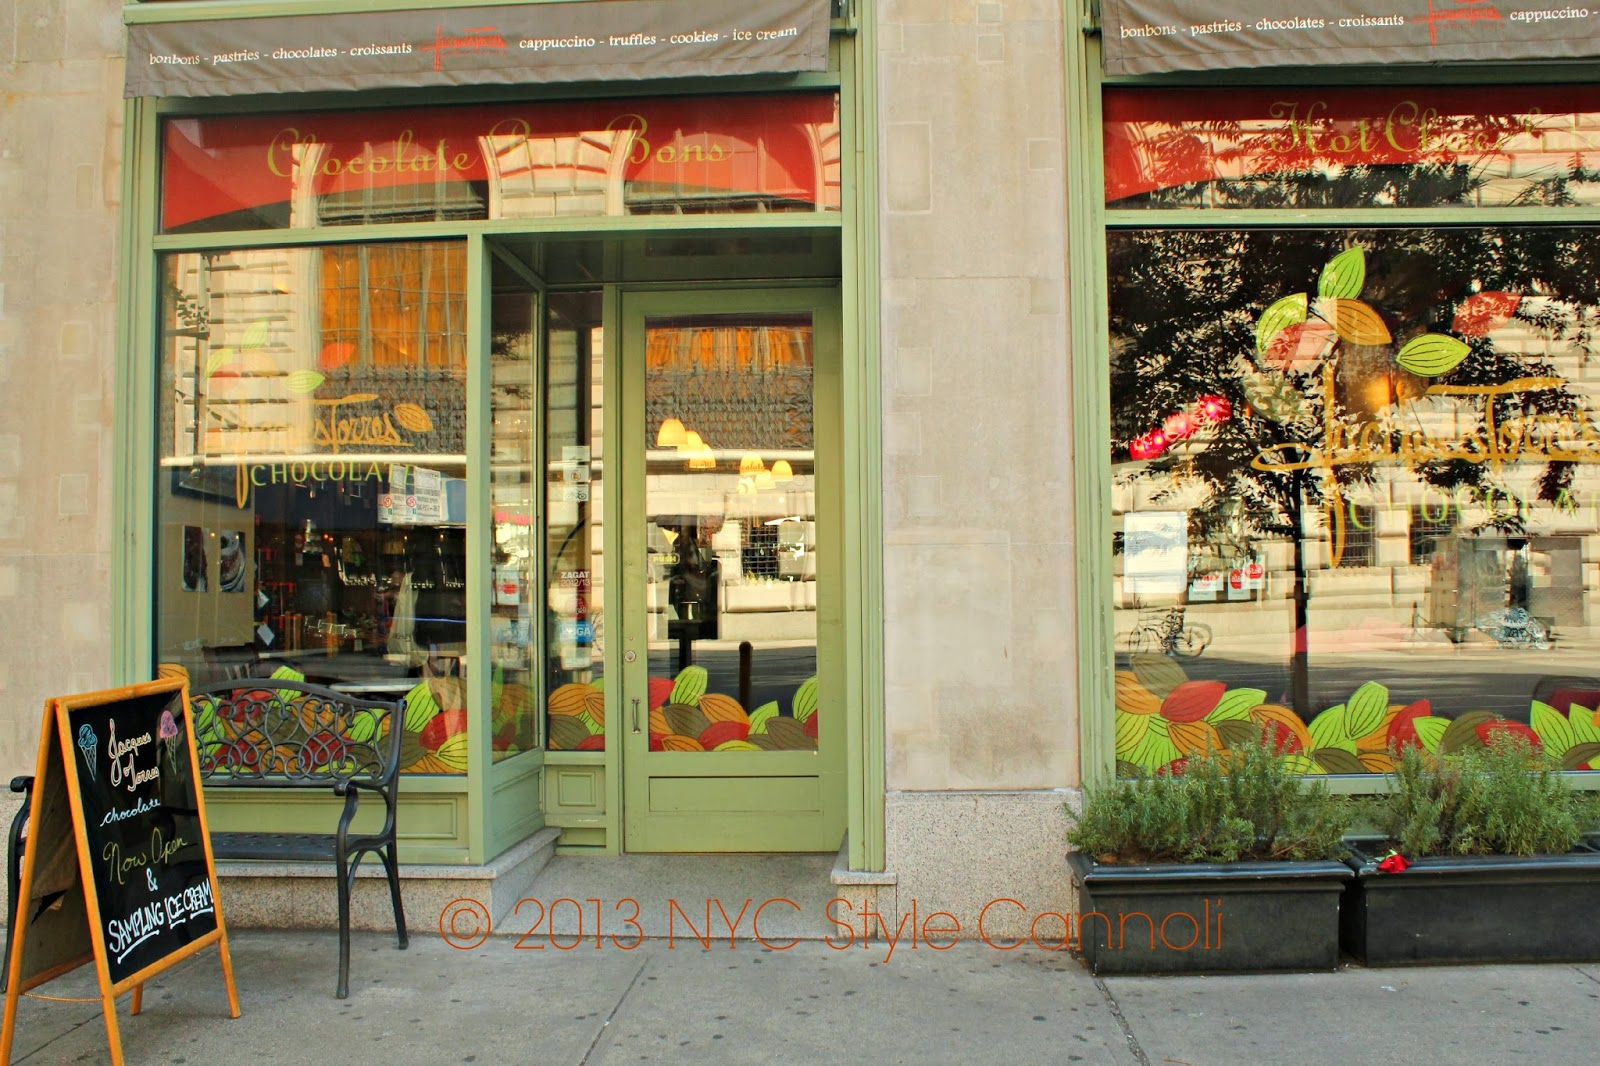 NYC, Style and a little Cannoli: Jacques Torres on the Upper West Side